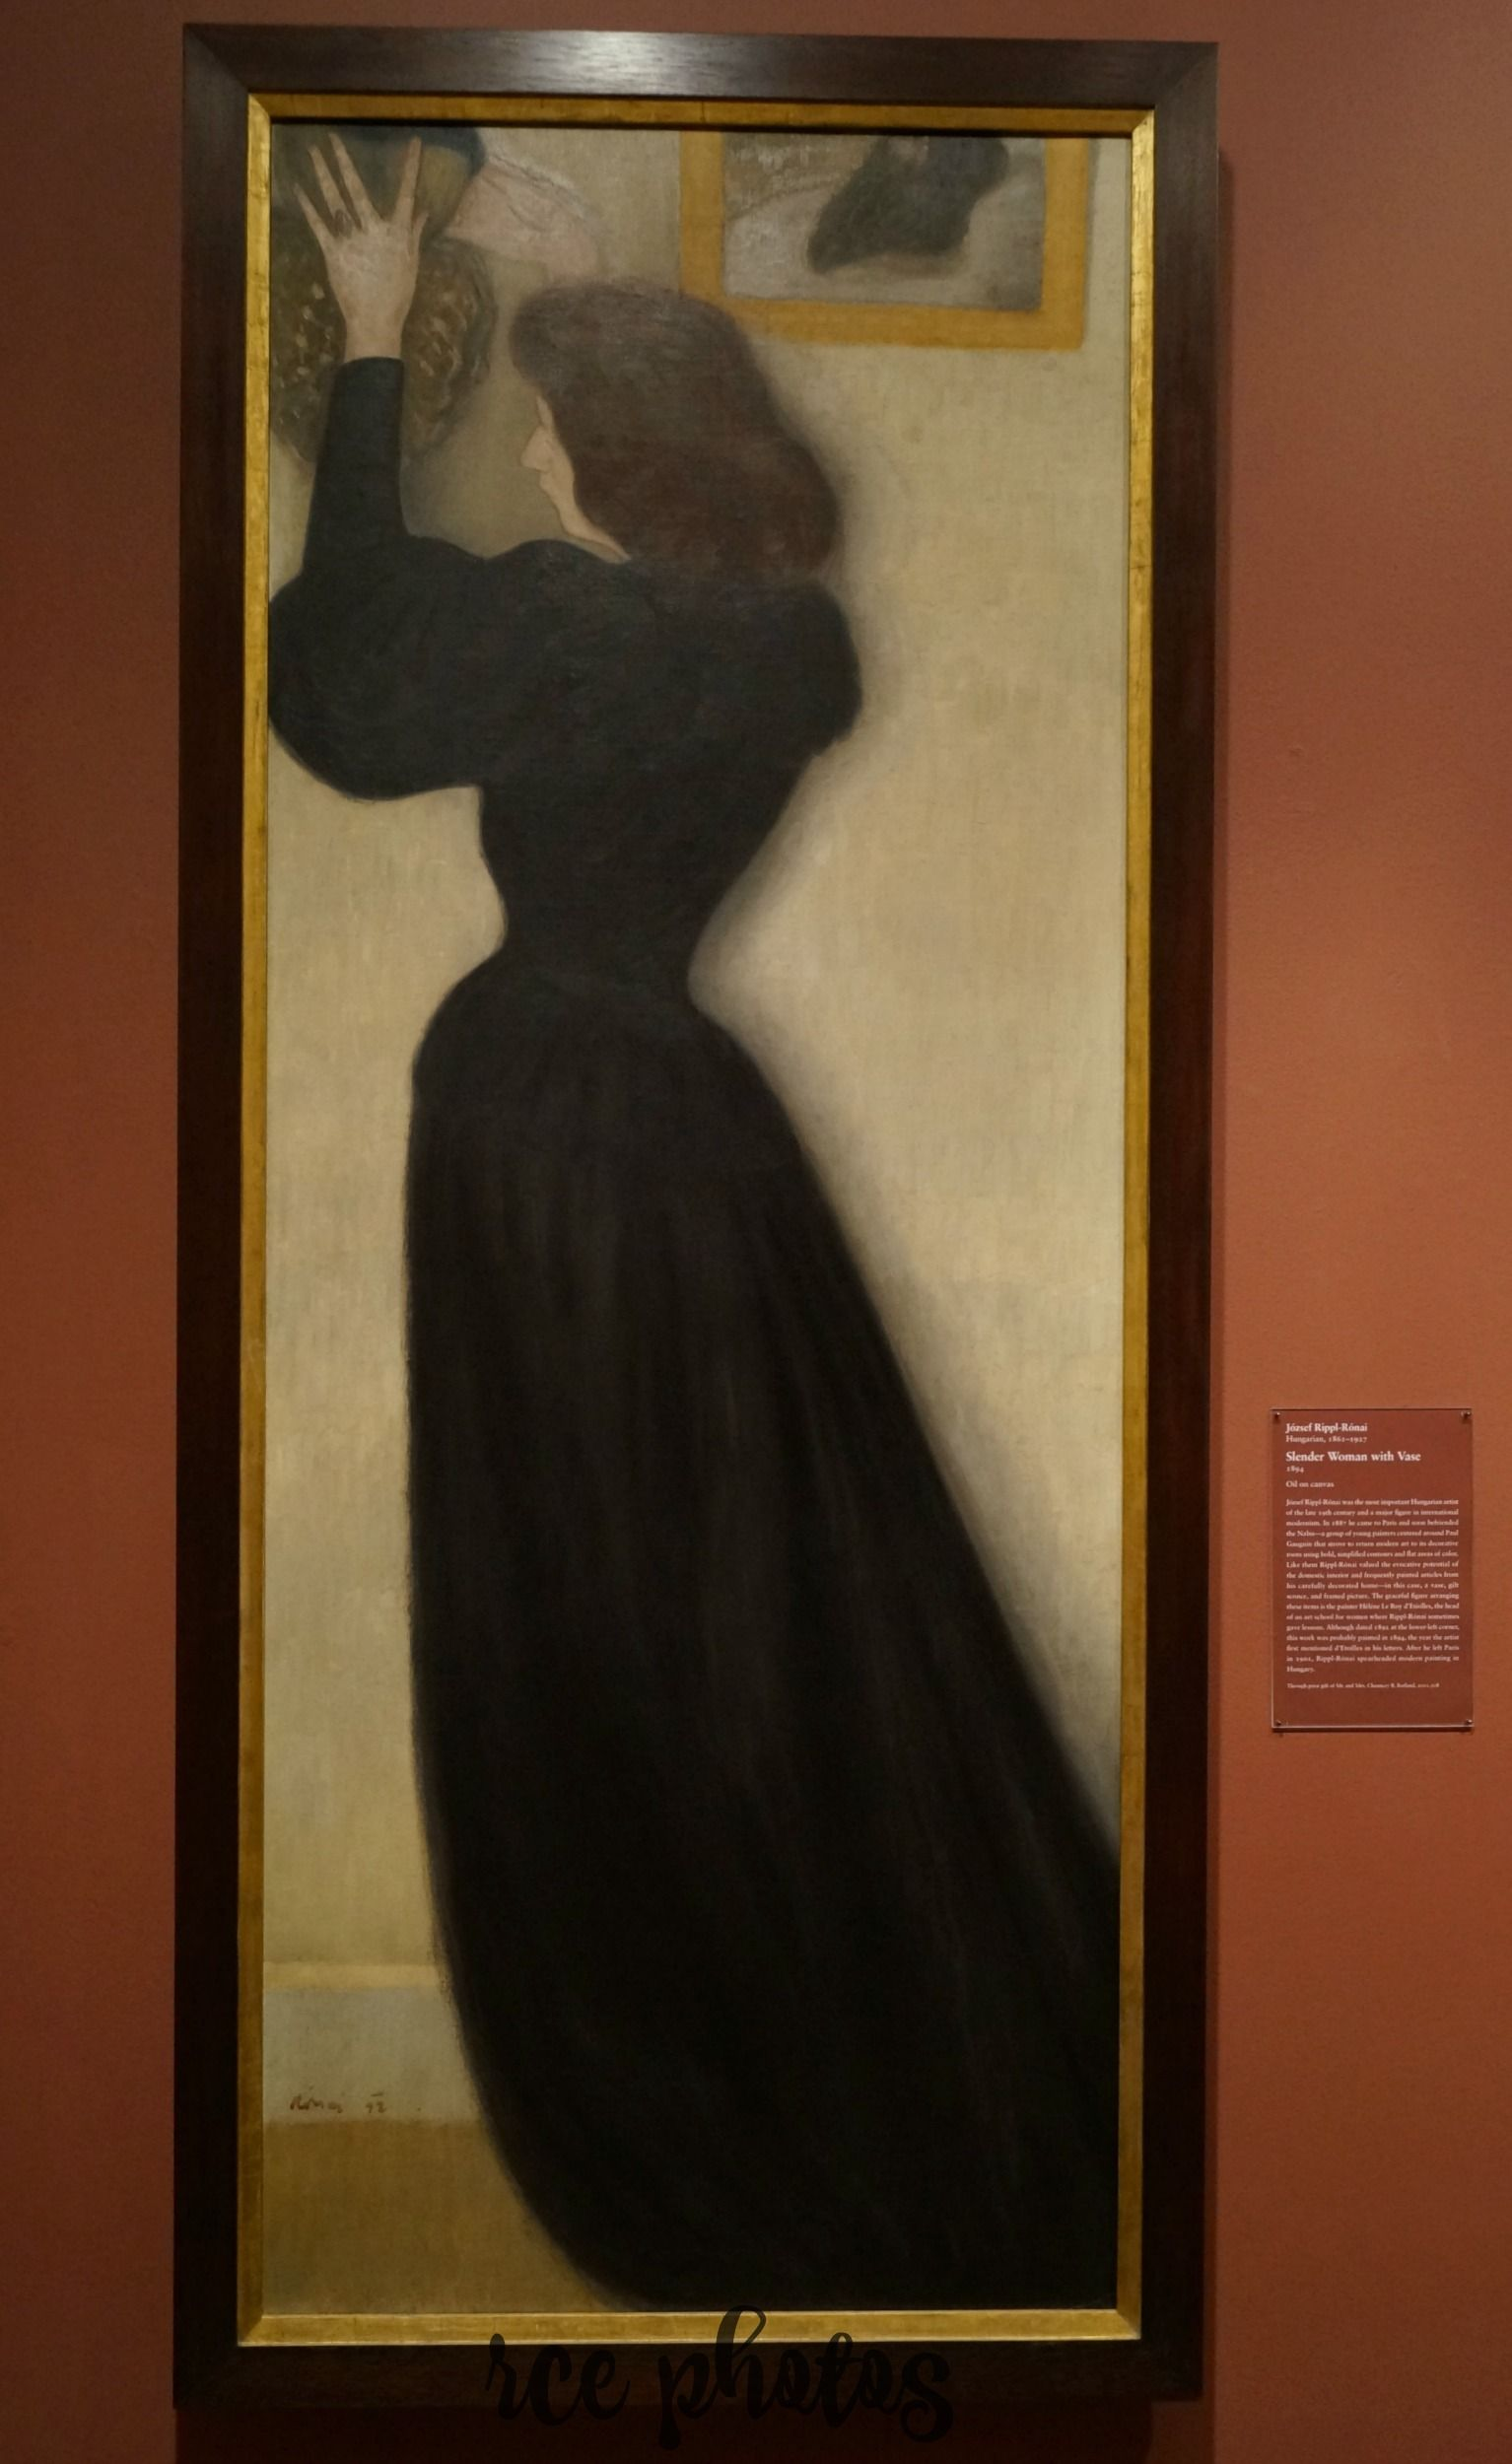 Slender Woman With Vase 1894 By Jozsef Rippl Ronai Art Institute Of Chicago Art Art Institute Of Chicago Art Institutes